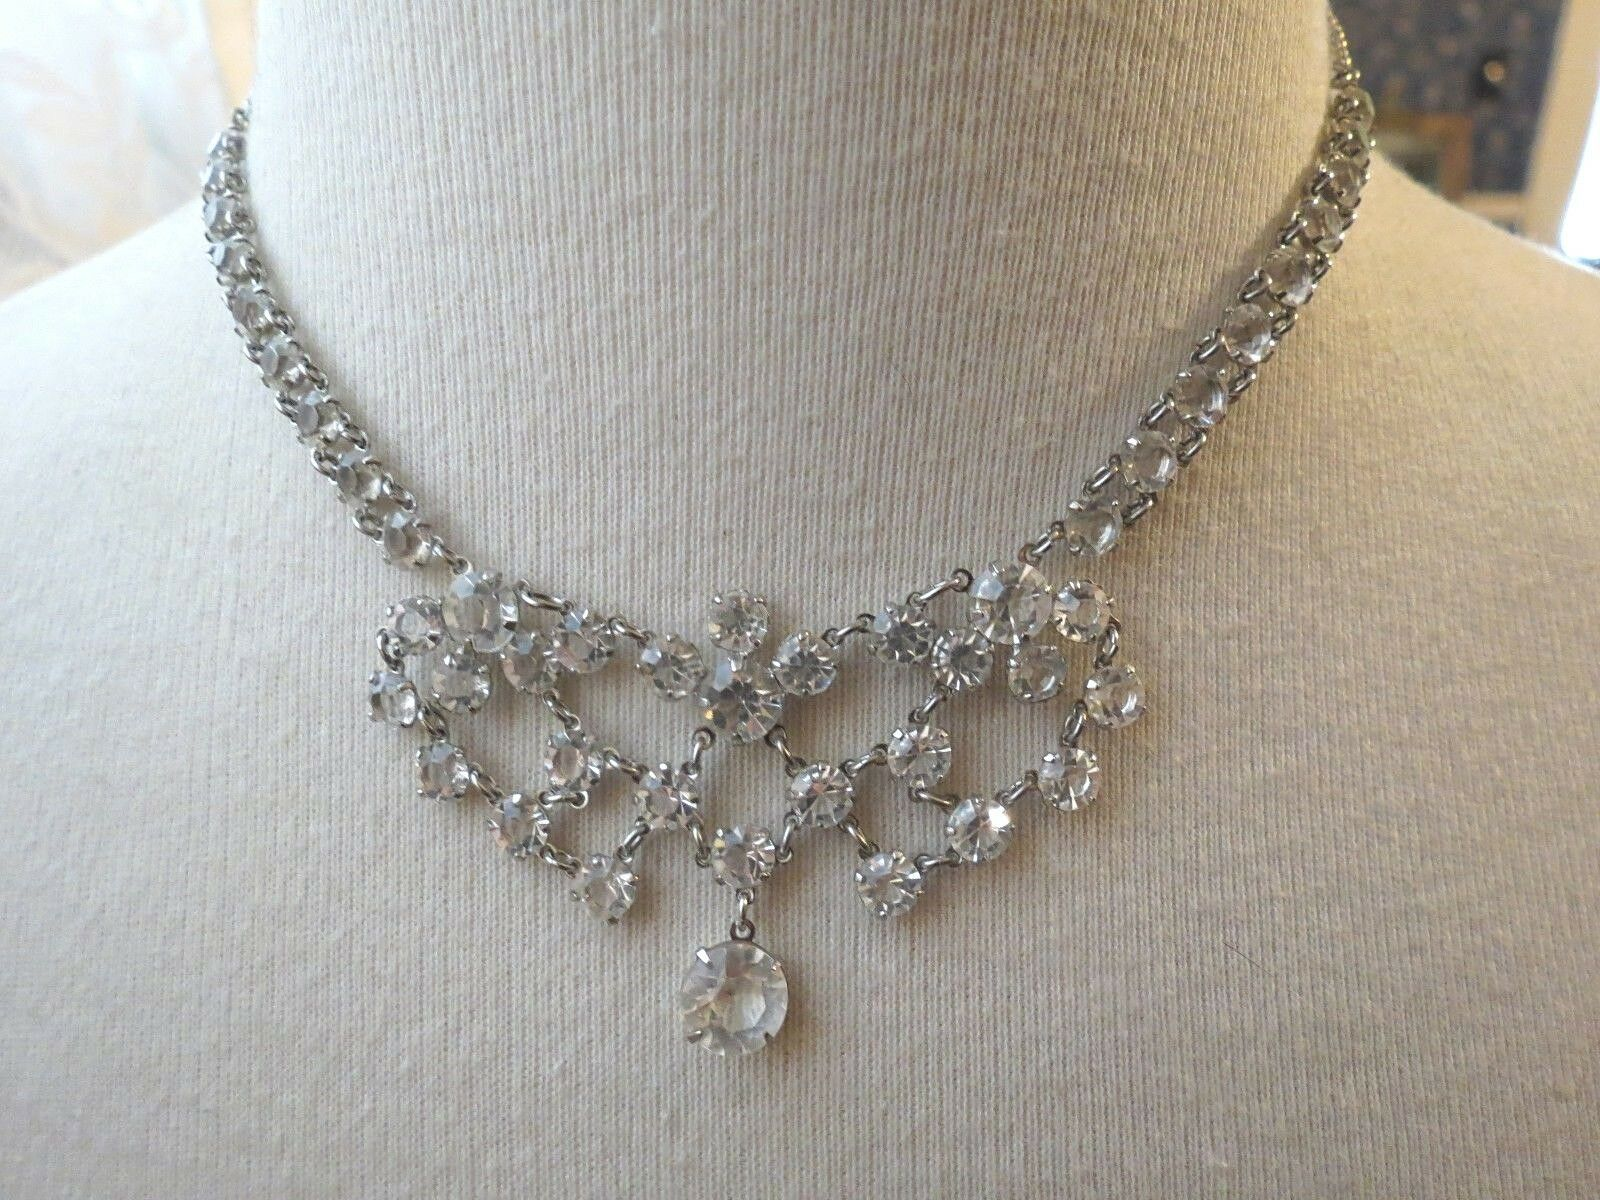 VTG Bezel Set Clear Crystal Necklace Choker Mini Bib Silver Plated Dangle Fringe